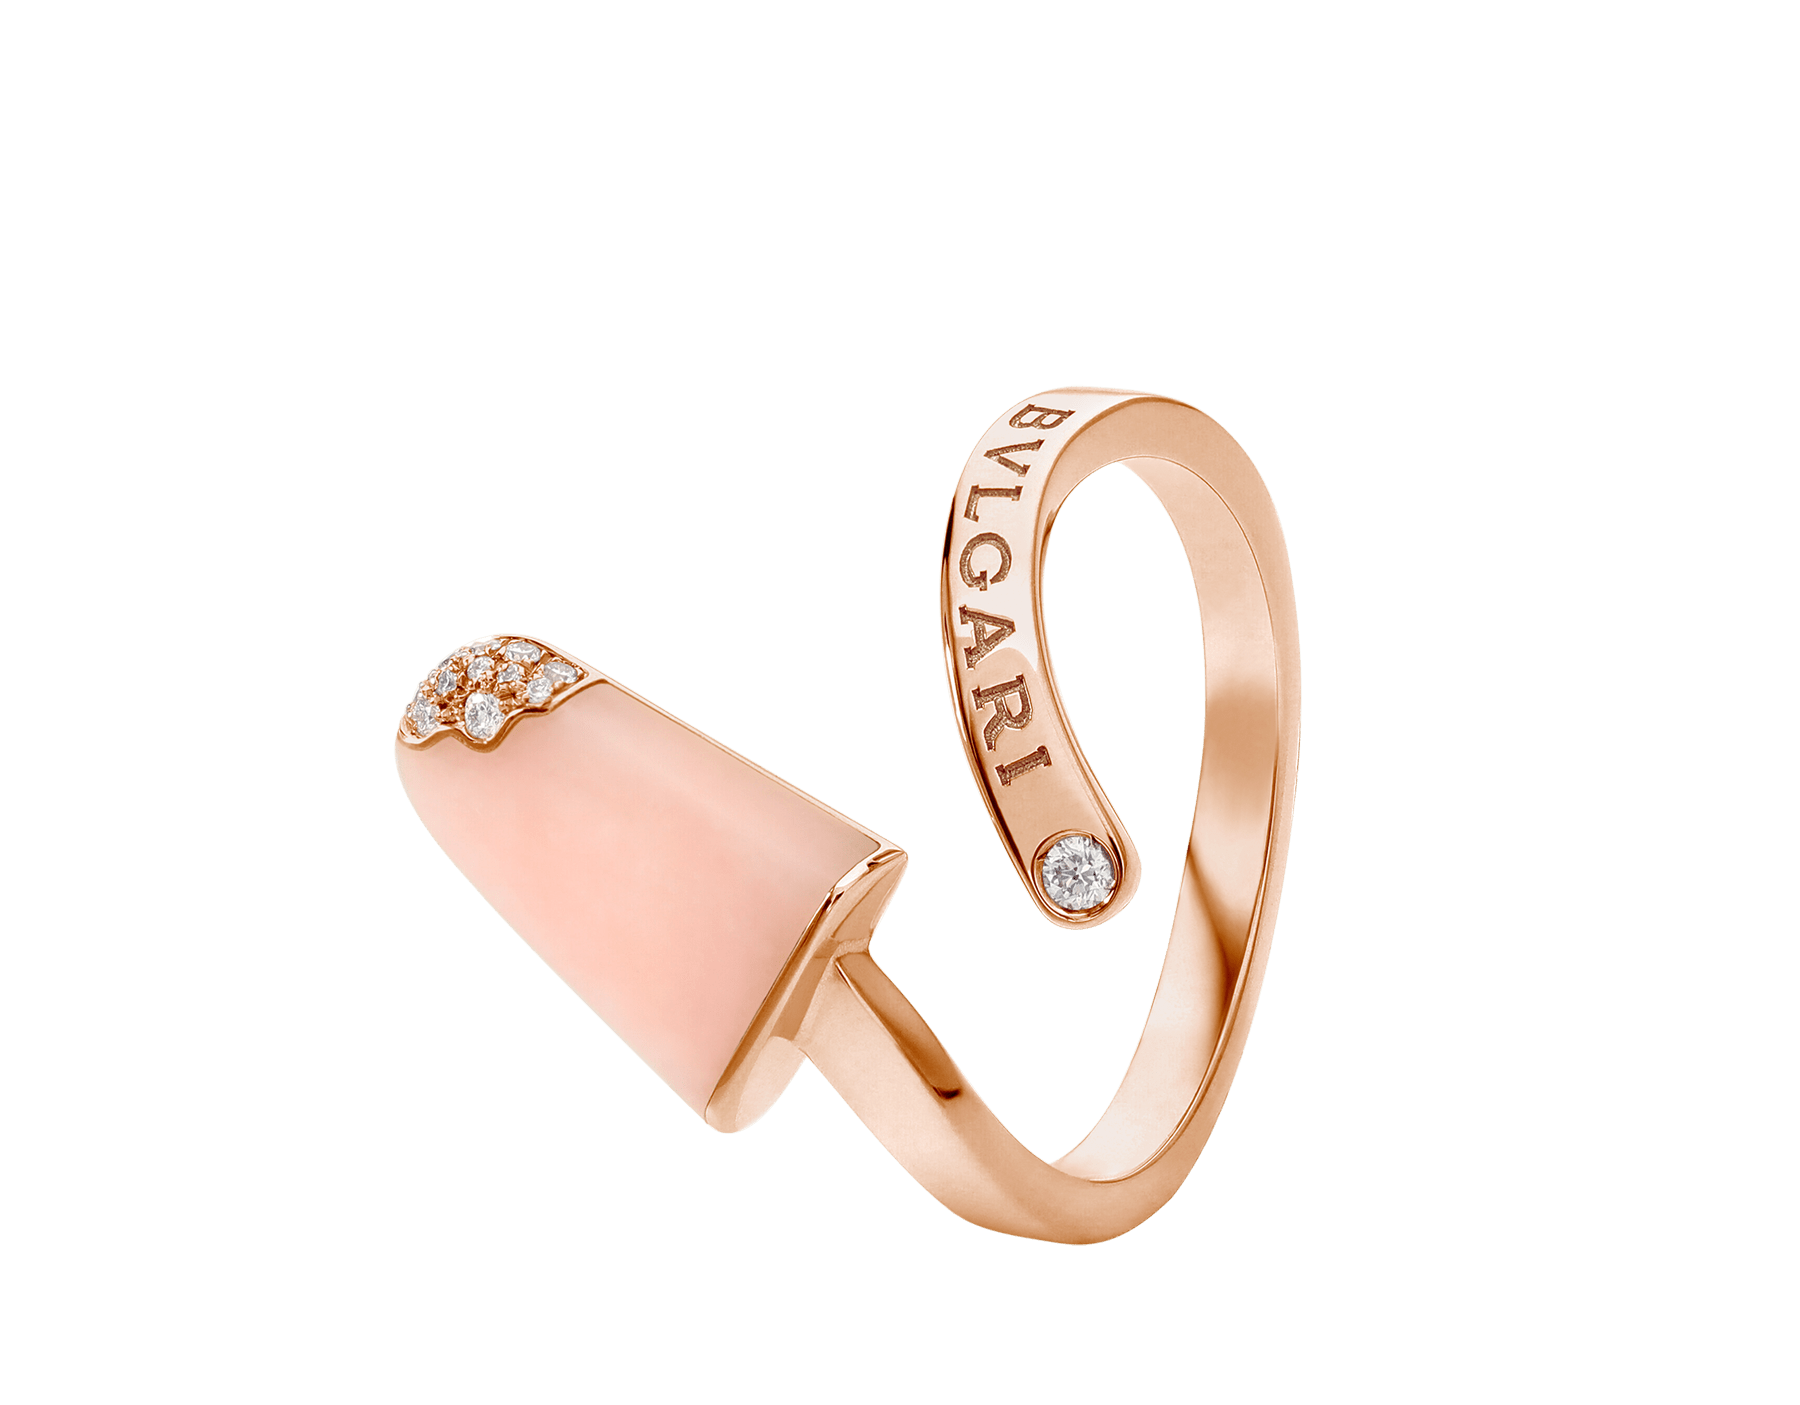 Bague BVLGARI BVLGARI en or rose 18 K sertie d'opale rose et pavé diamants AN858657 image 2